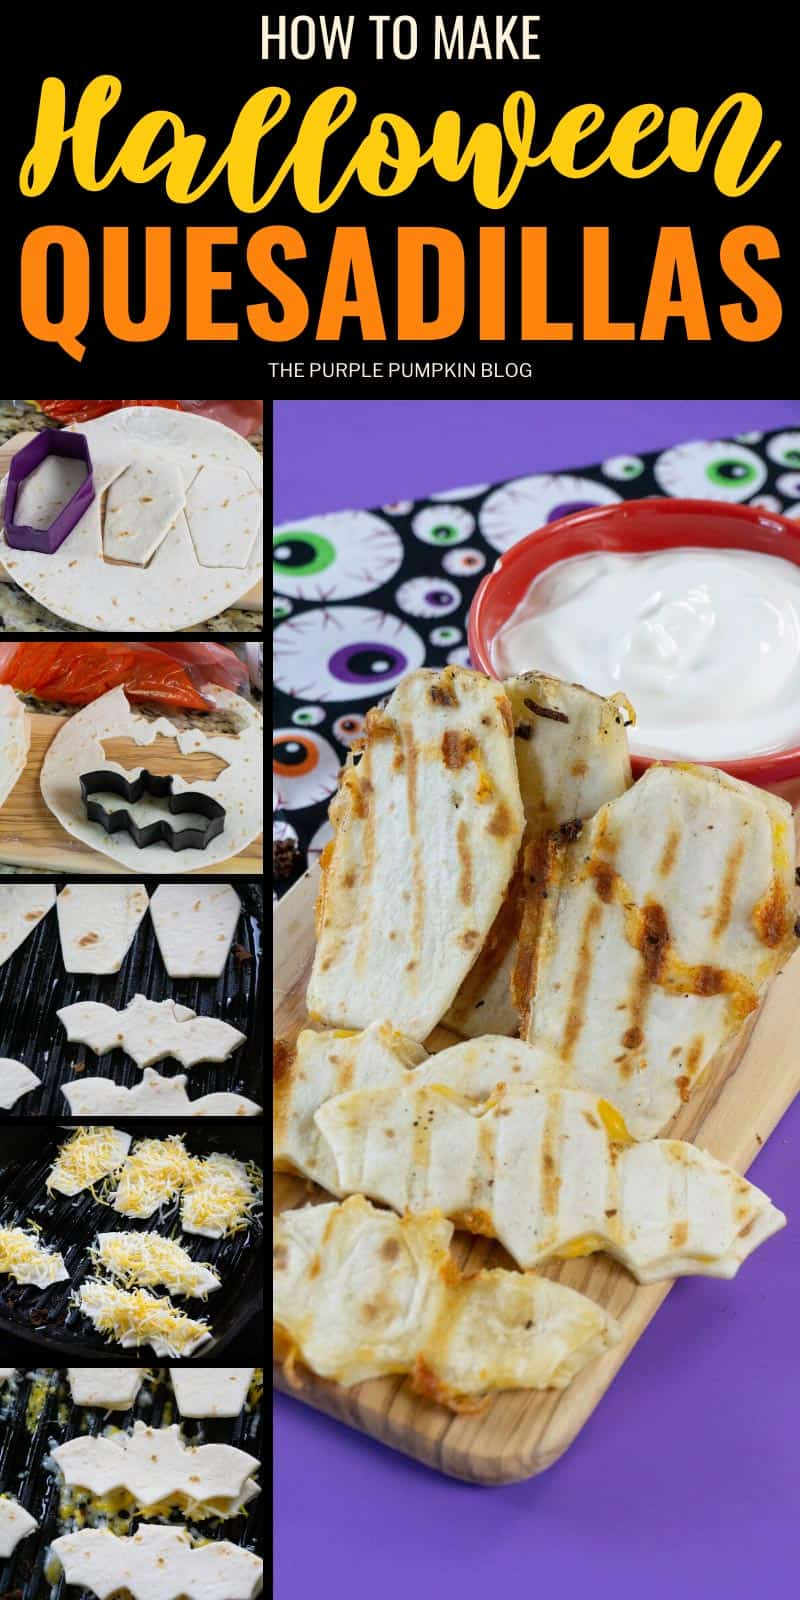 How to make quesadillas for Halloween